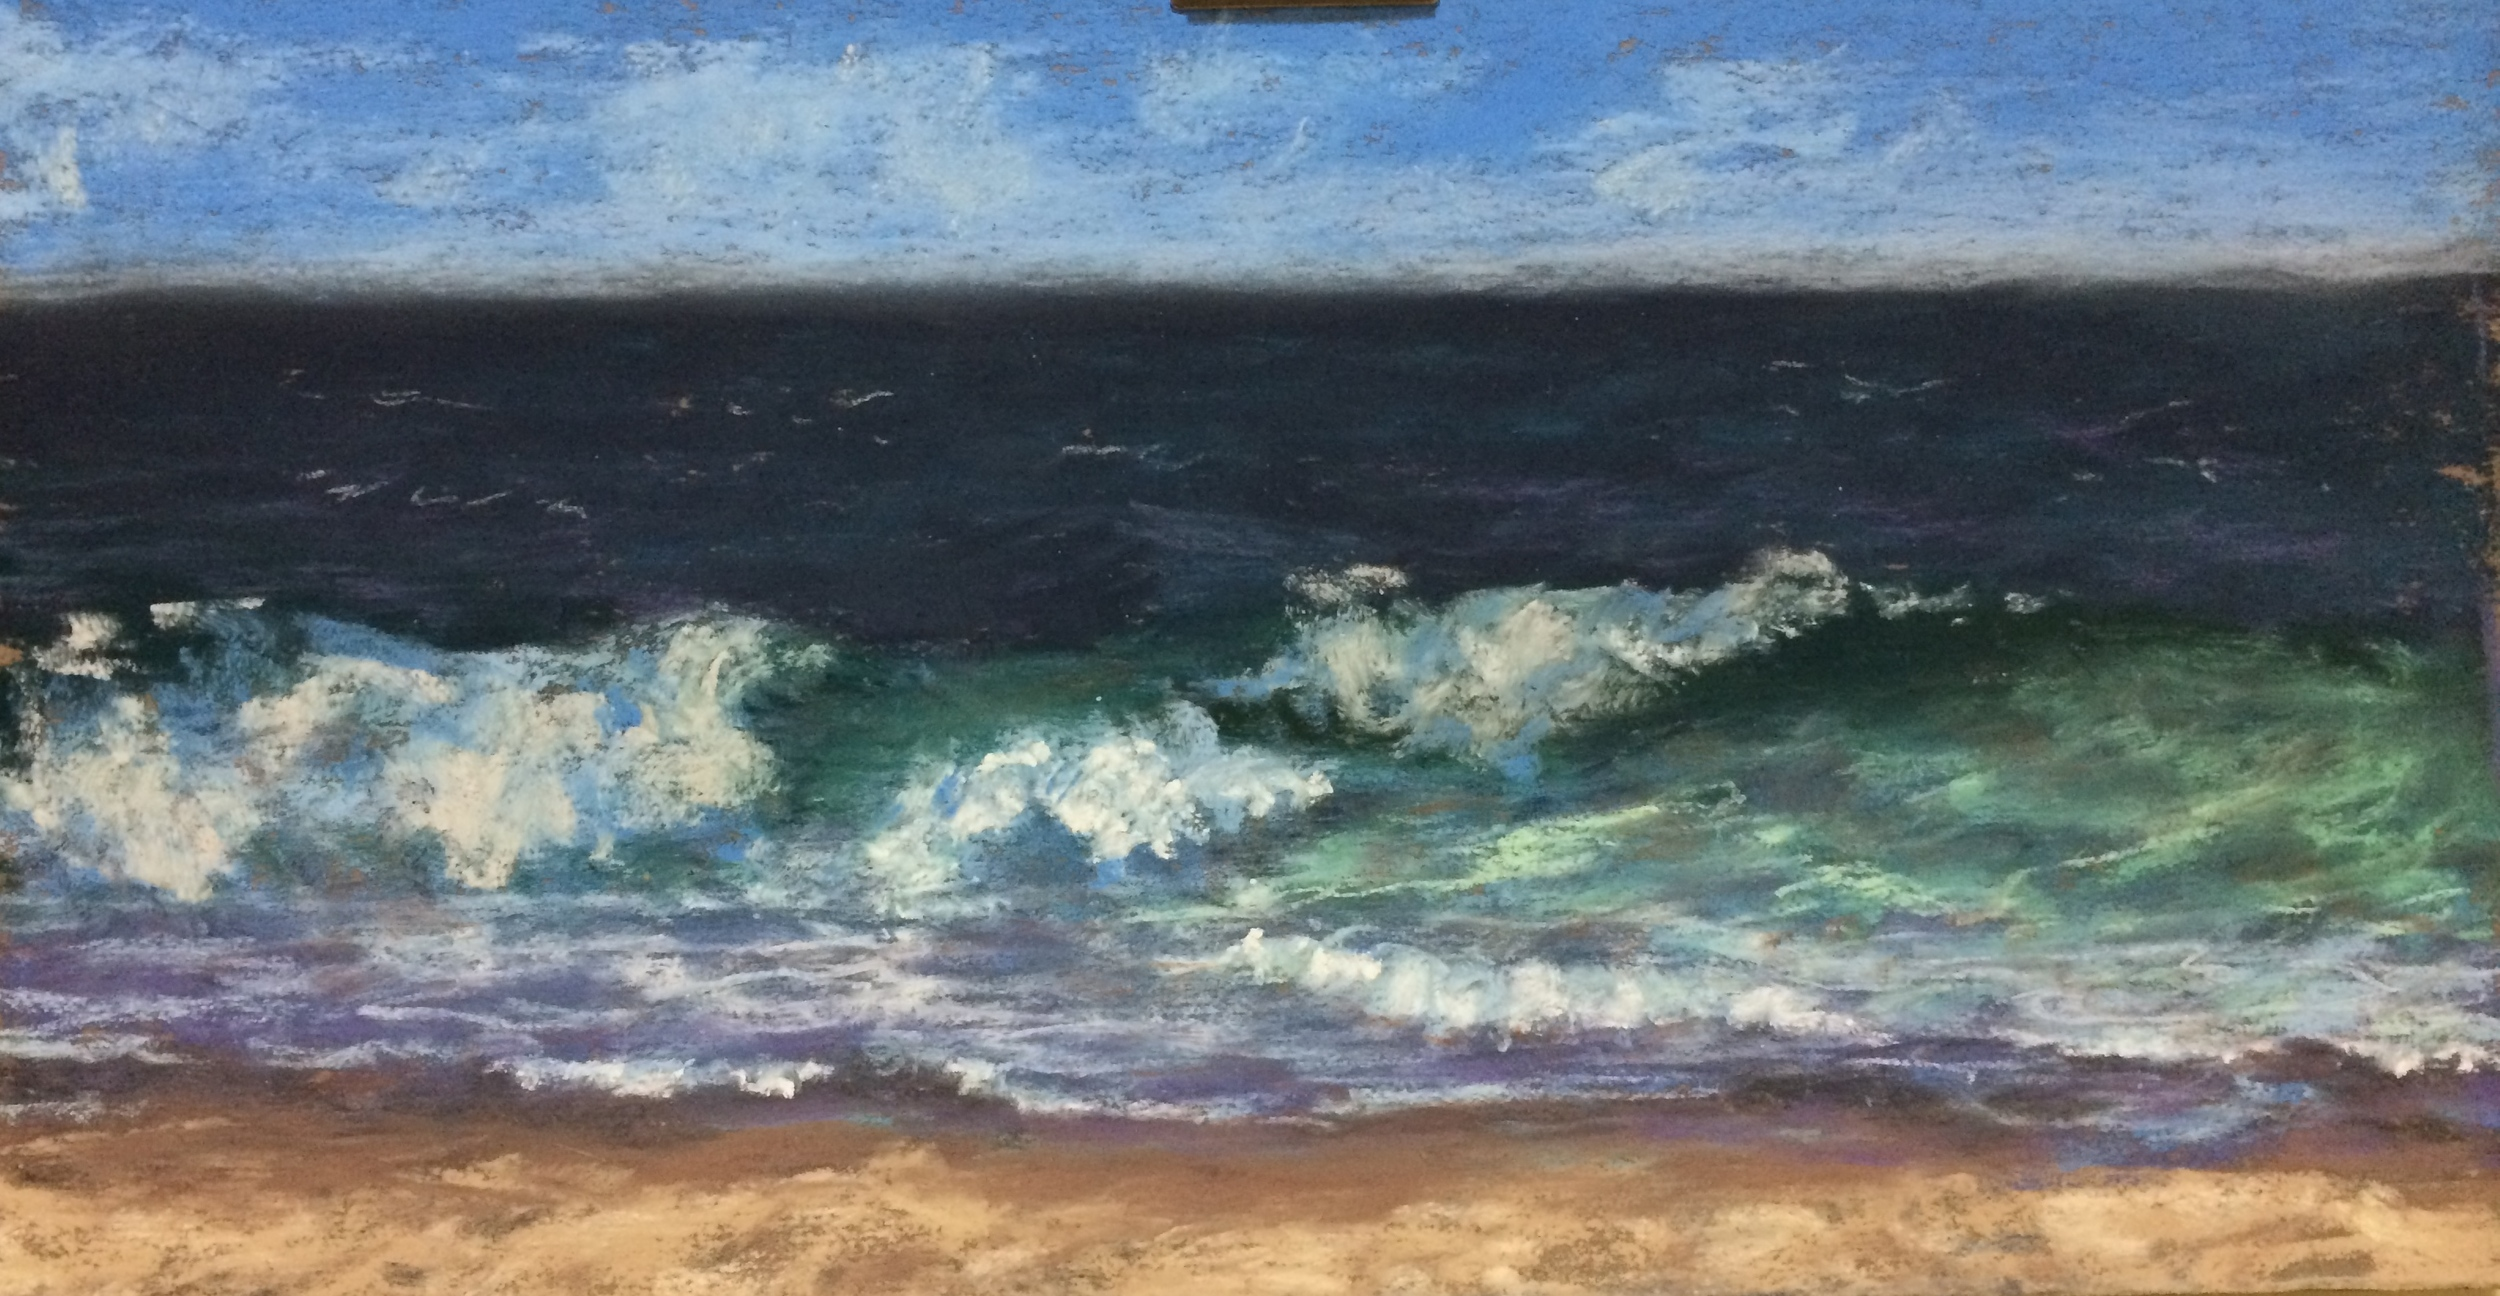 Chasing the Wave - sold